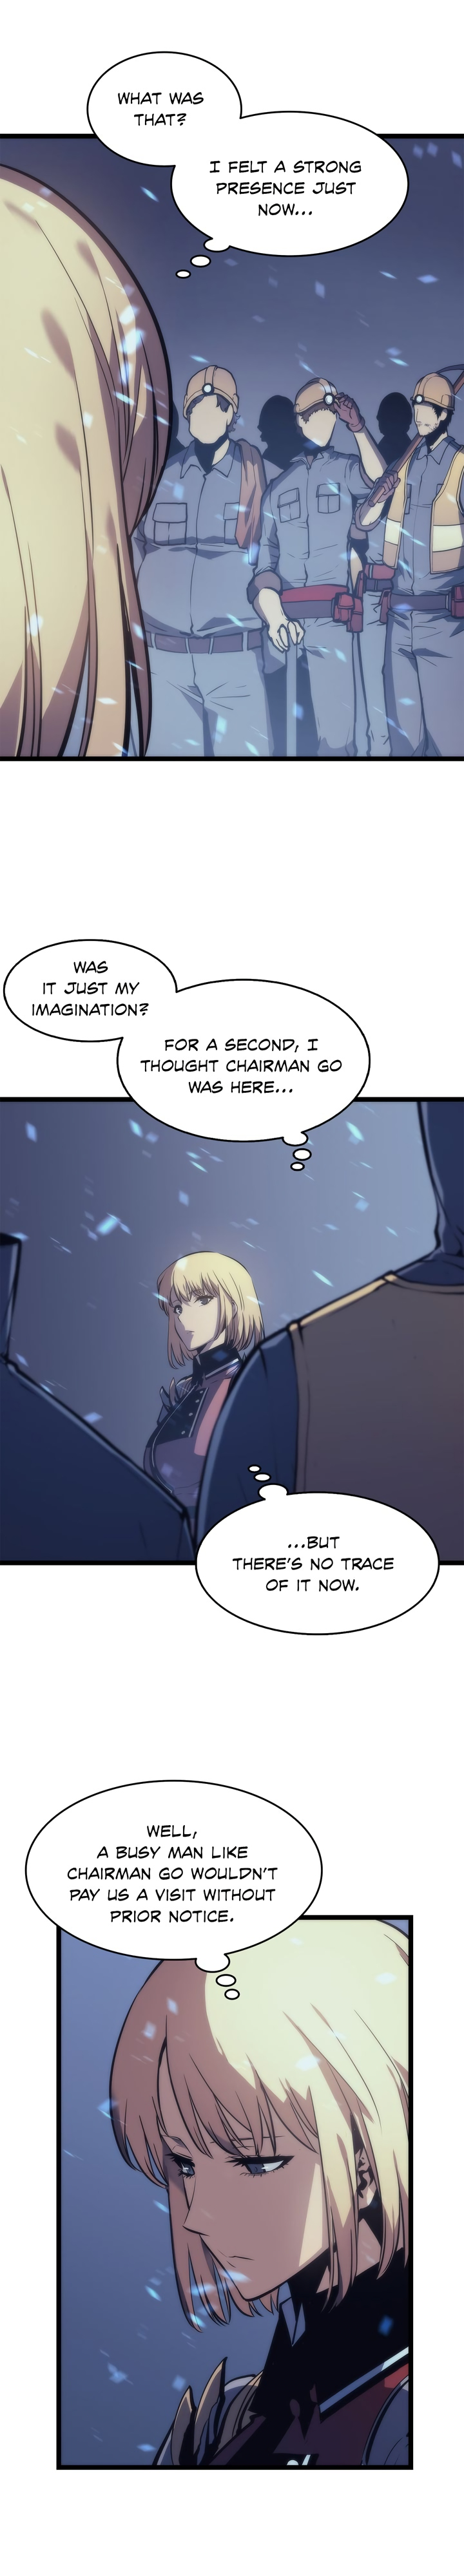 Solo Leveling, Chapter 66 image 006